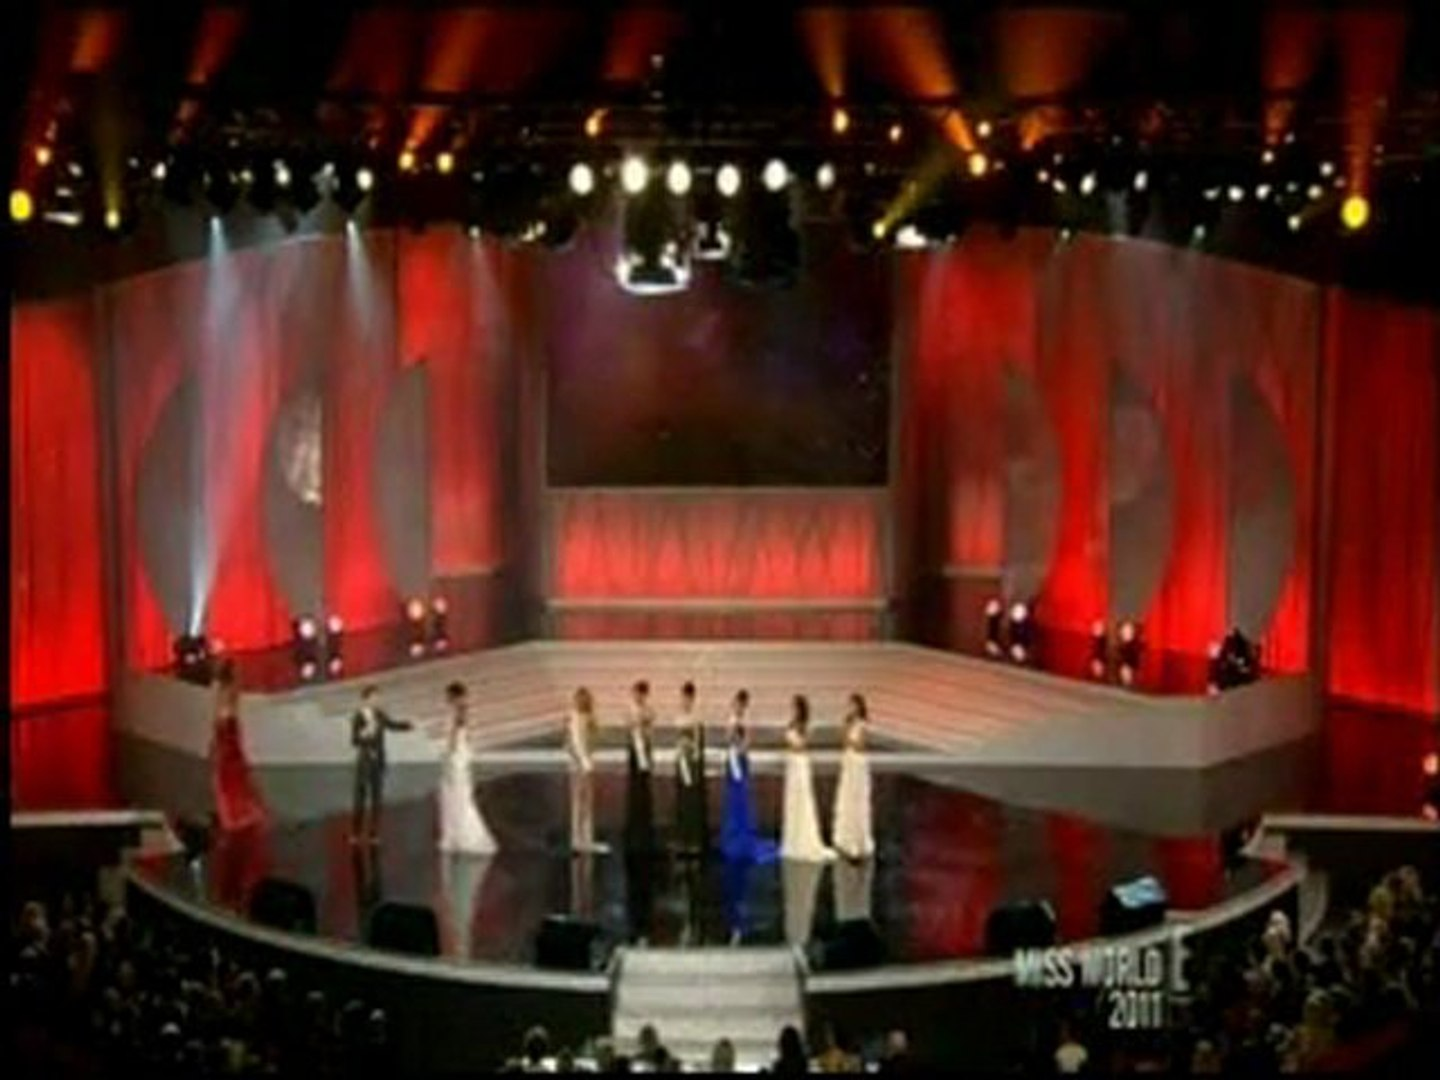 Miss world 2011 Live From London 6th November 2011 Pt3